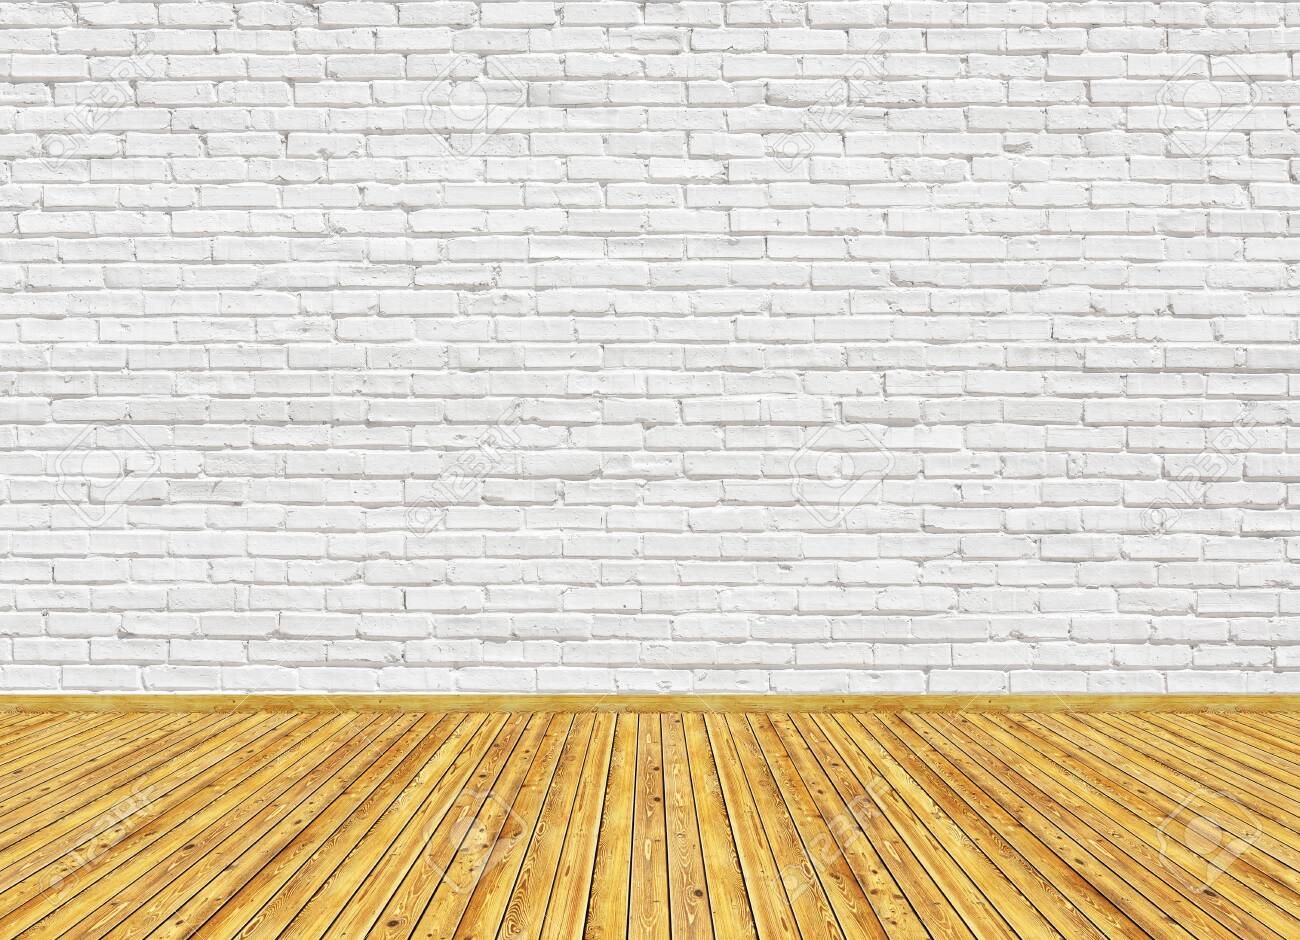 3D rendering mockup of empty living room with vintage wooden parquet floor and white painted brick wall. Can be used for design interior. - 135415925